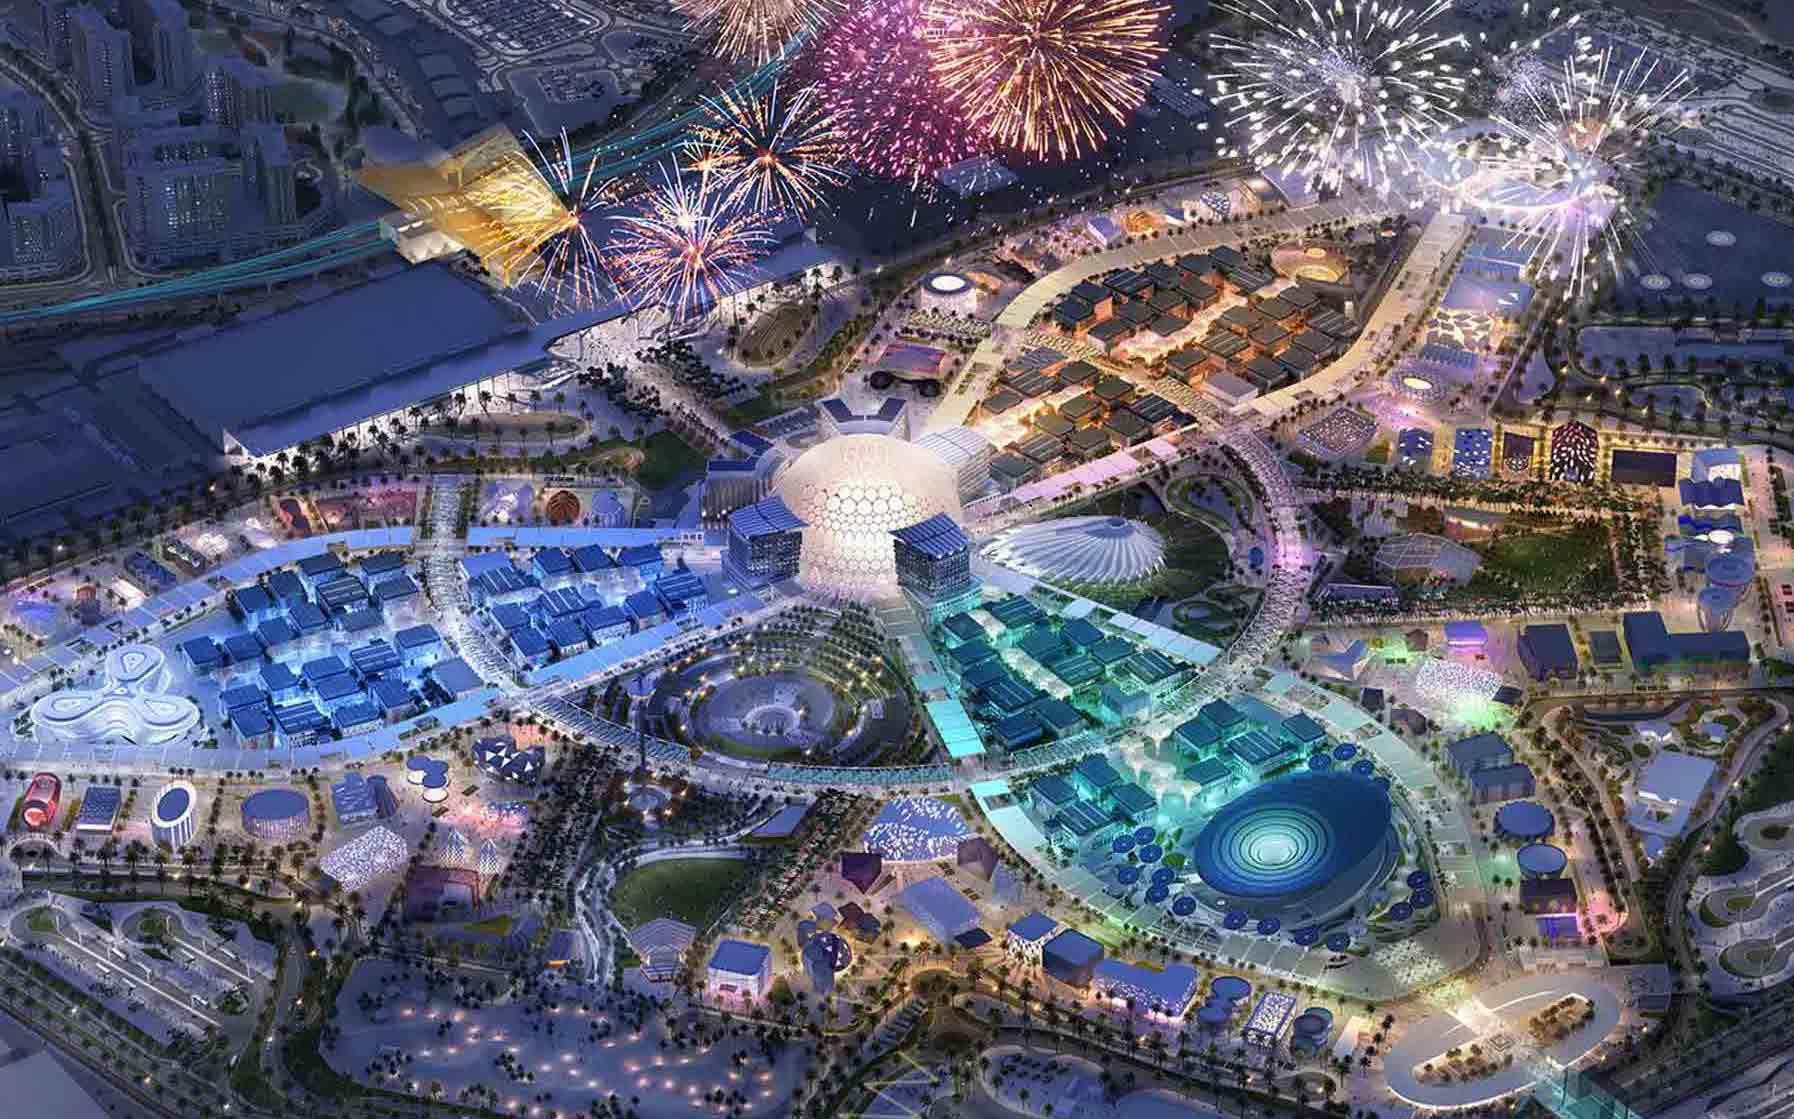 Expo 2020 Dubai: Ticket prices, free tickets and discounts announced - News | Khaleej Times